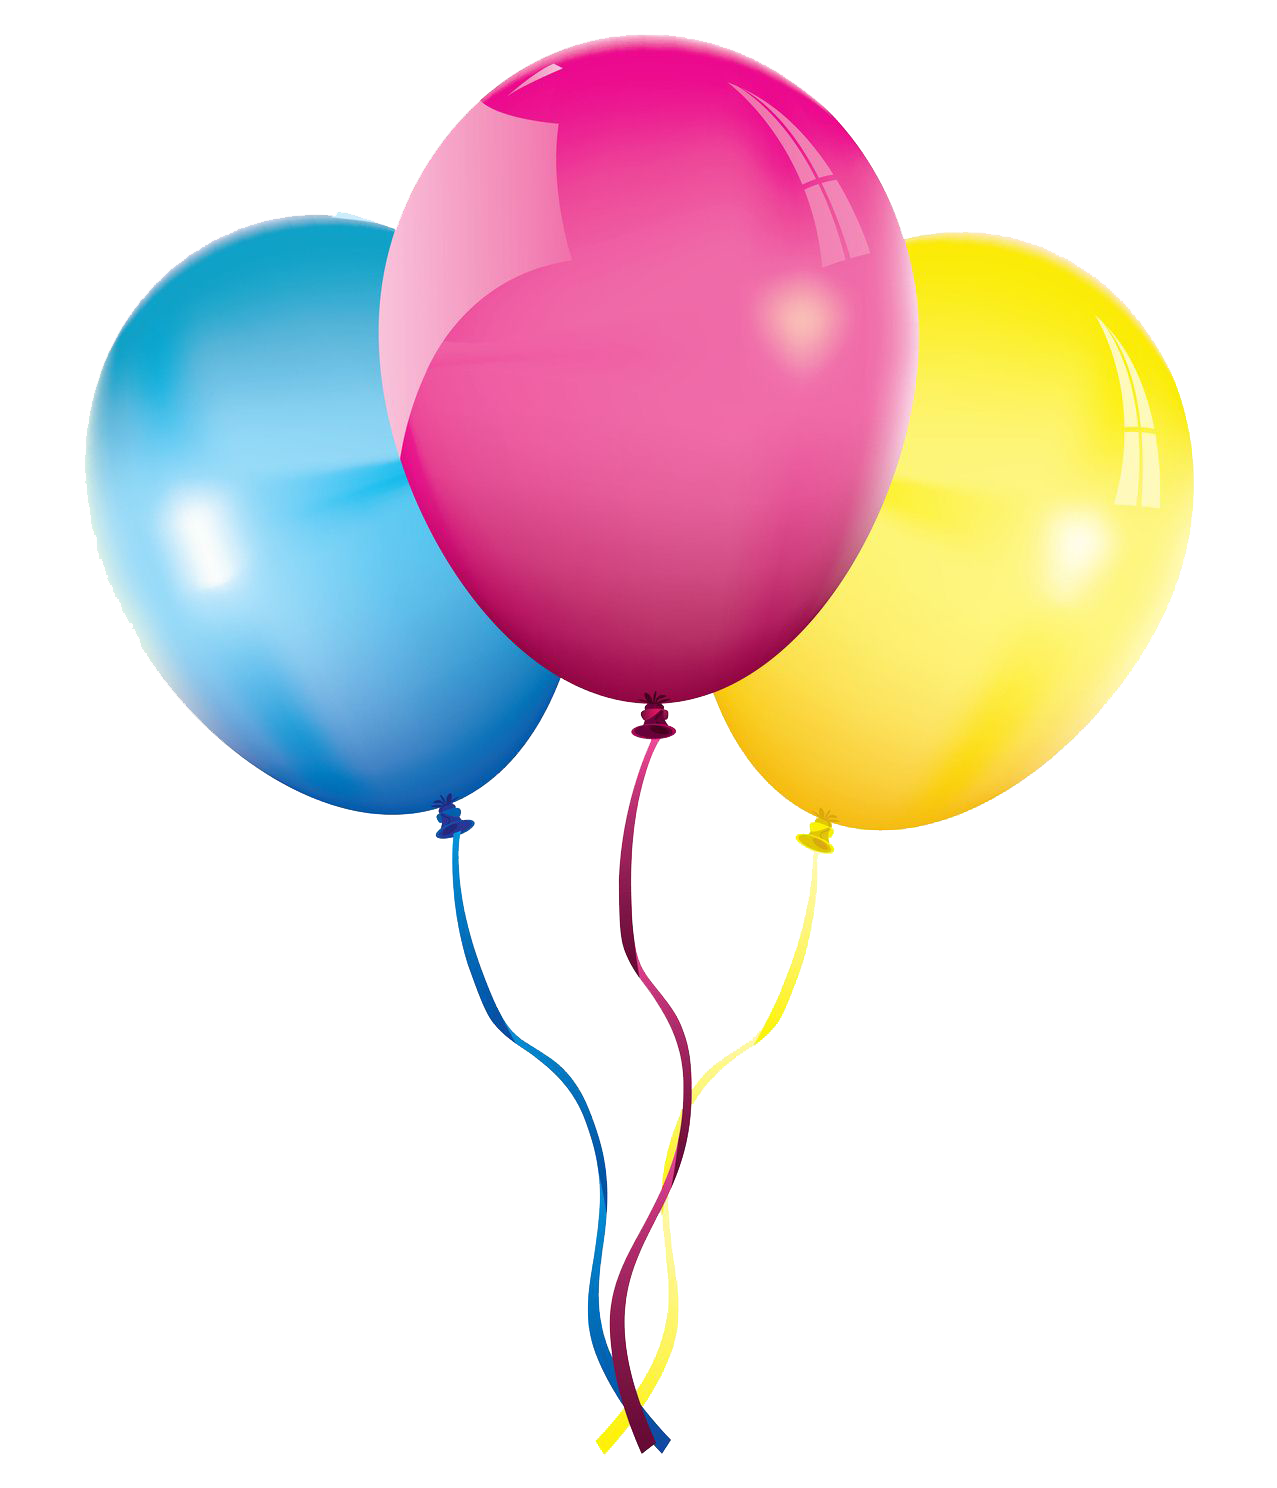 Birthday balloons clipart file png black and white download Birthday Balloon Party Clip art - Balloons PNG File png download ... png black and white download